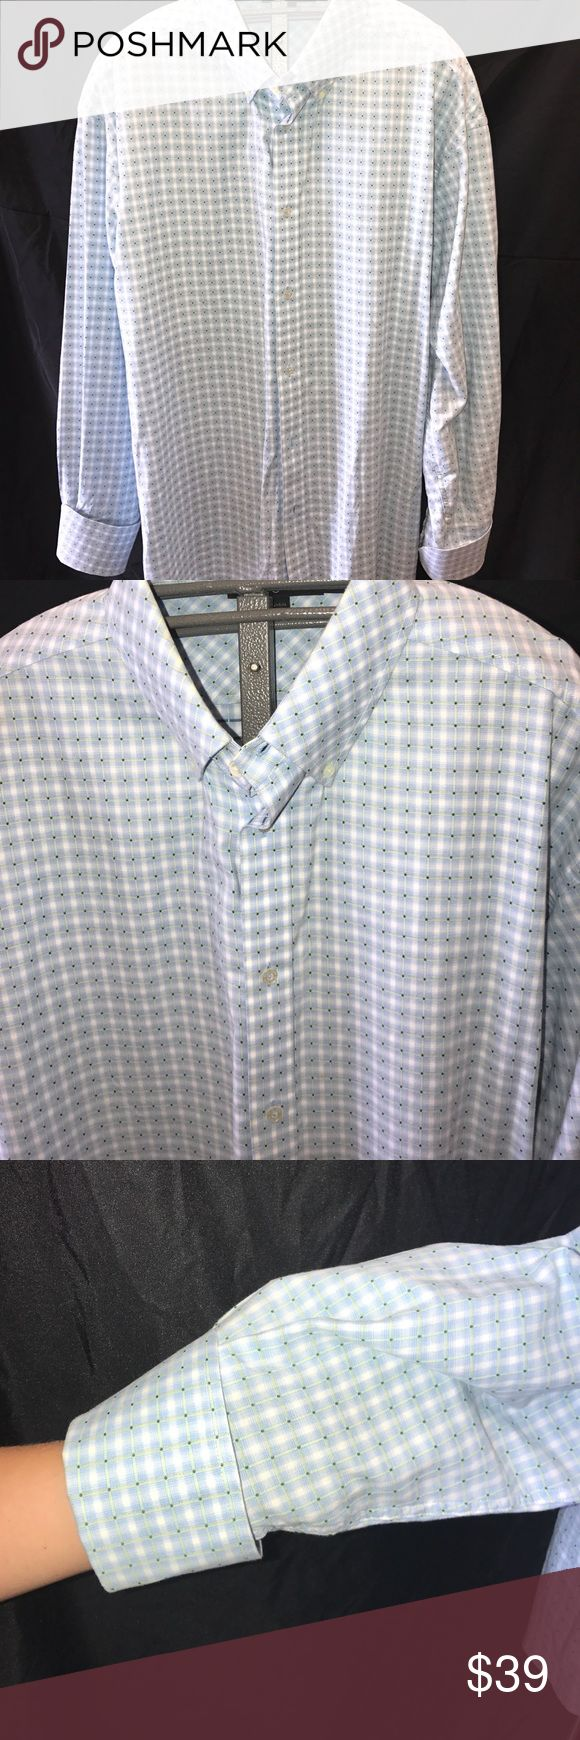 Sean John Men's Shirt XXXL French cuffs. Light blue checkered shirt with few stains as pictured on left cuff great for date night. French cuffs to style it up Sean John Shirts Casual Button Down Shirts